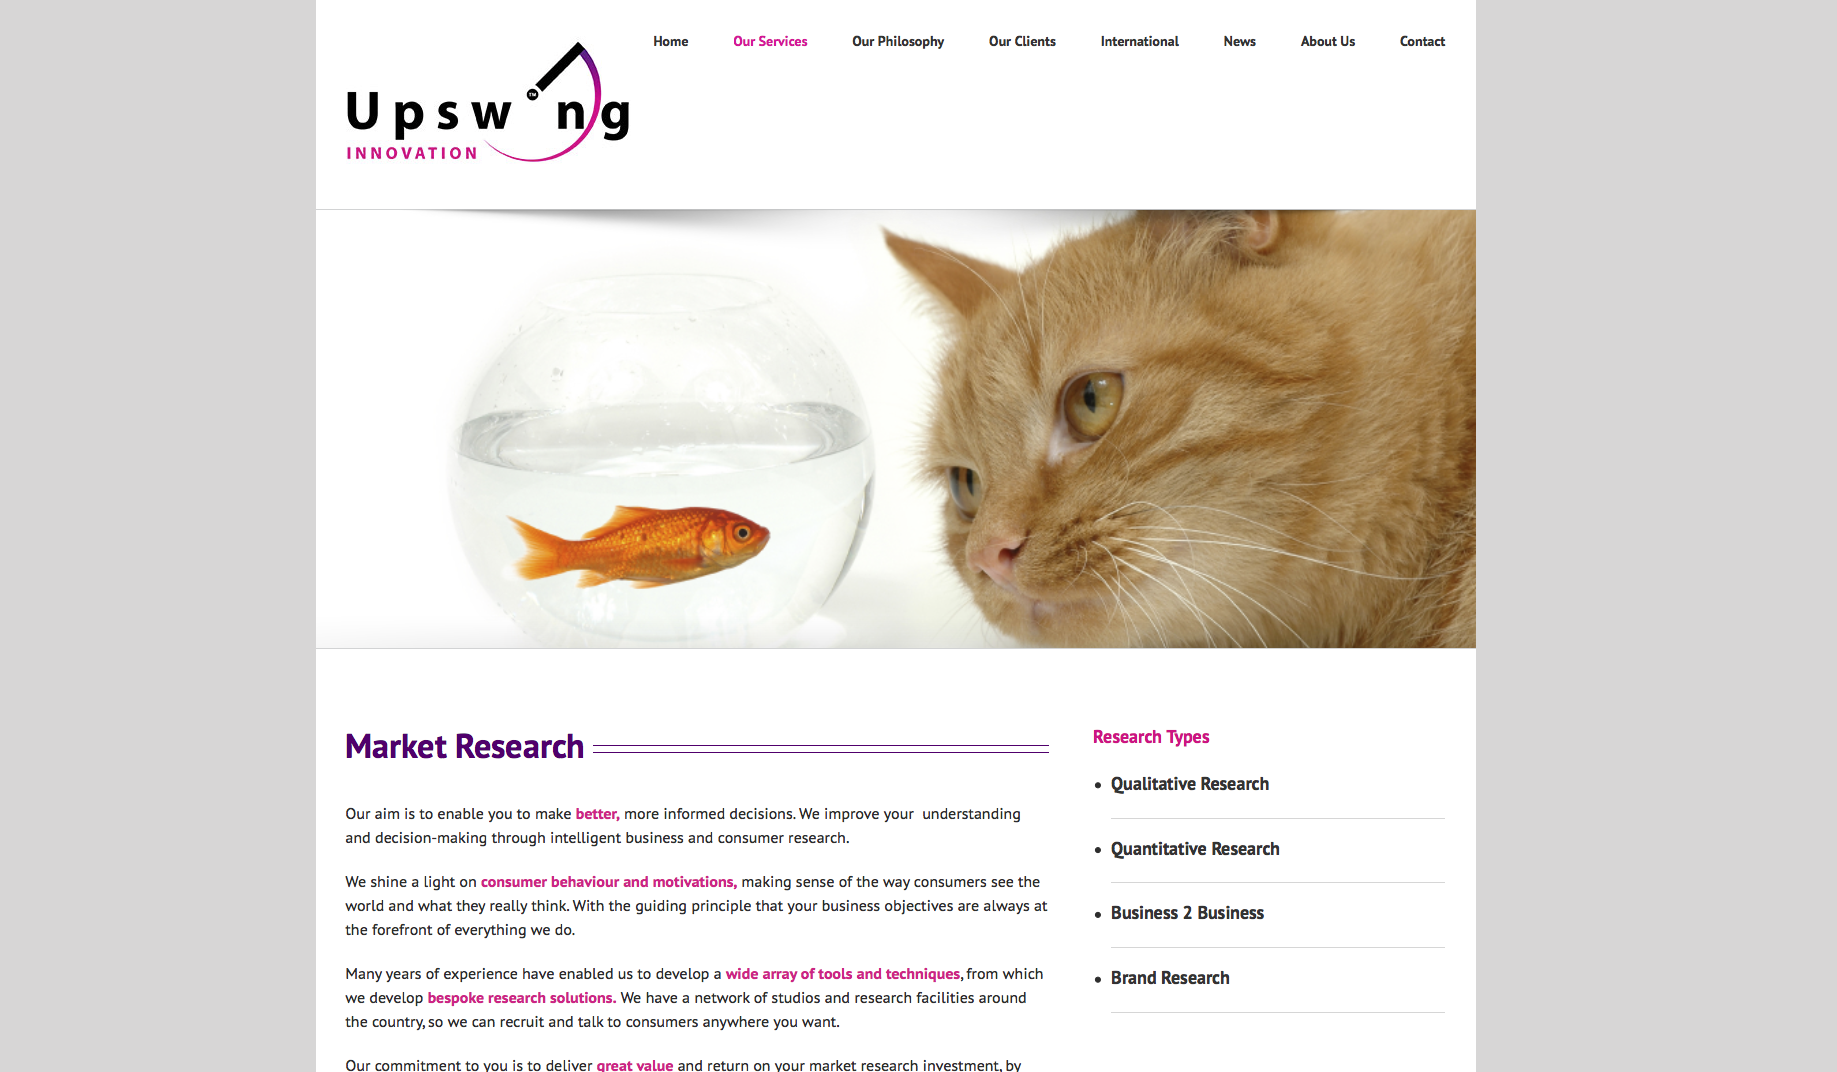 Market Research page design for Upswing Innovation